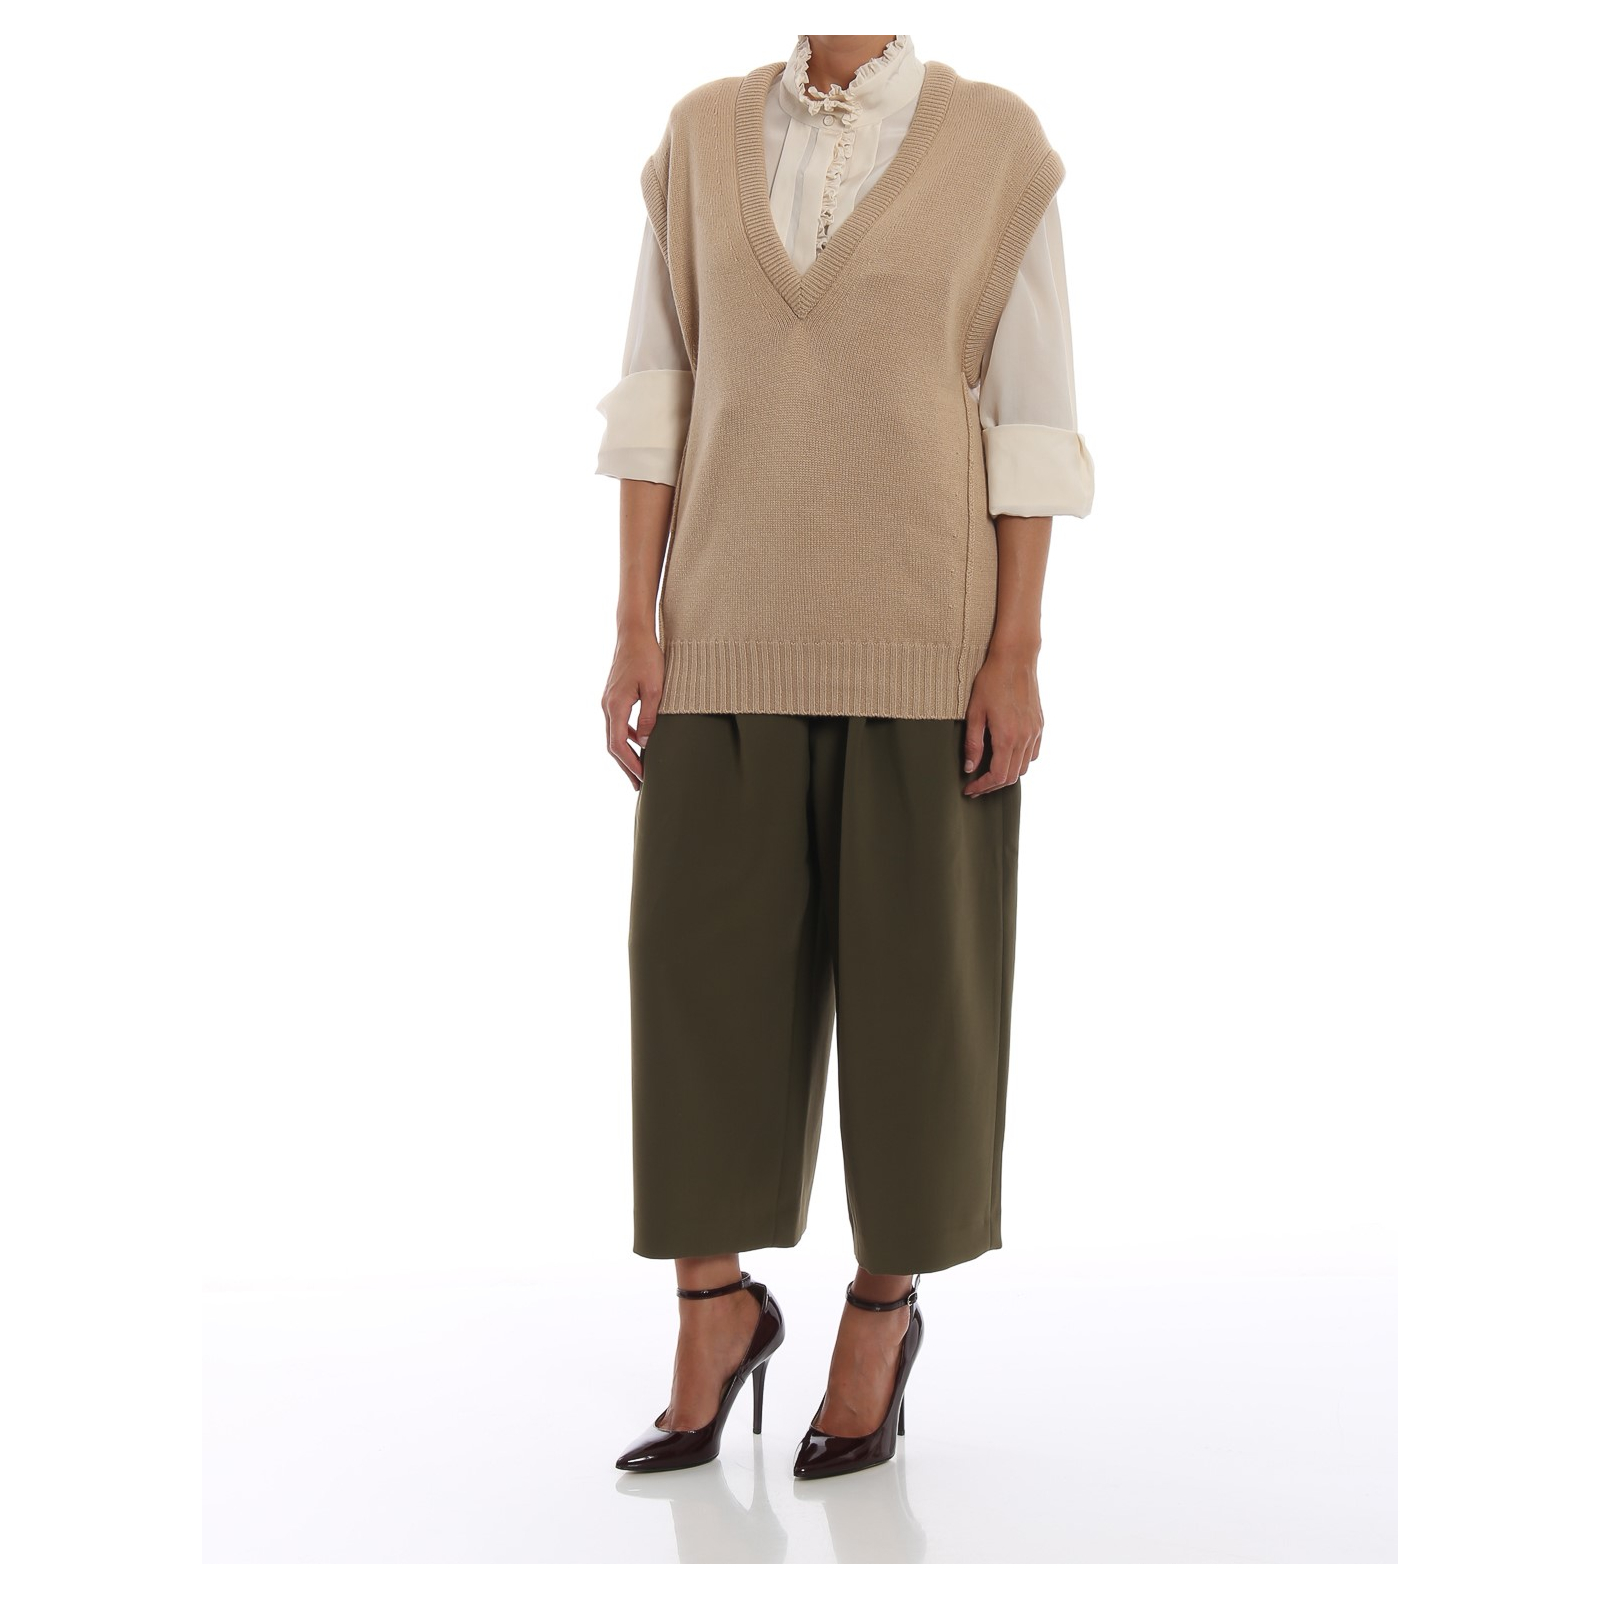 CHLOE V-neck loose knitted top kaszmir, nowy